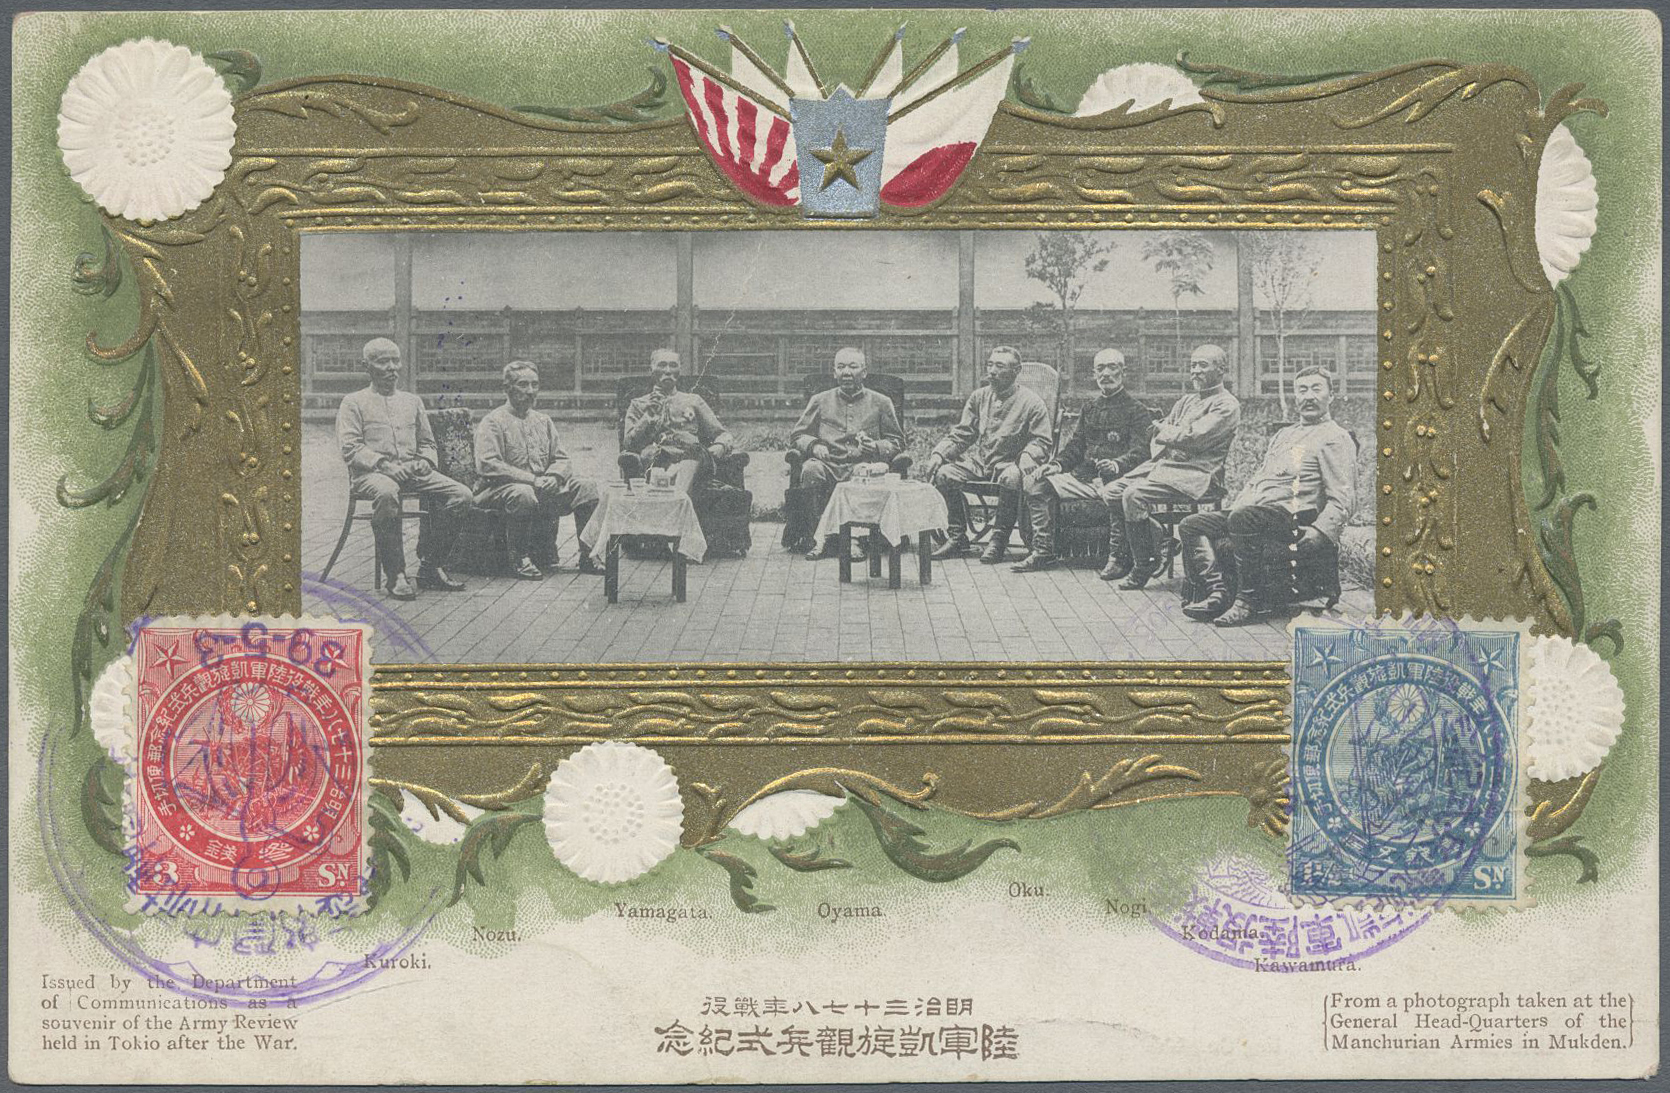 Lot 34531 - Japan  -  Auktionshaus Christoph Gärtner GmbH & Co. KG Collections Germany,  Collections Supplement, Surprise boxes #39 Day 7